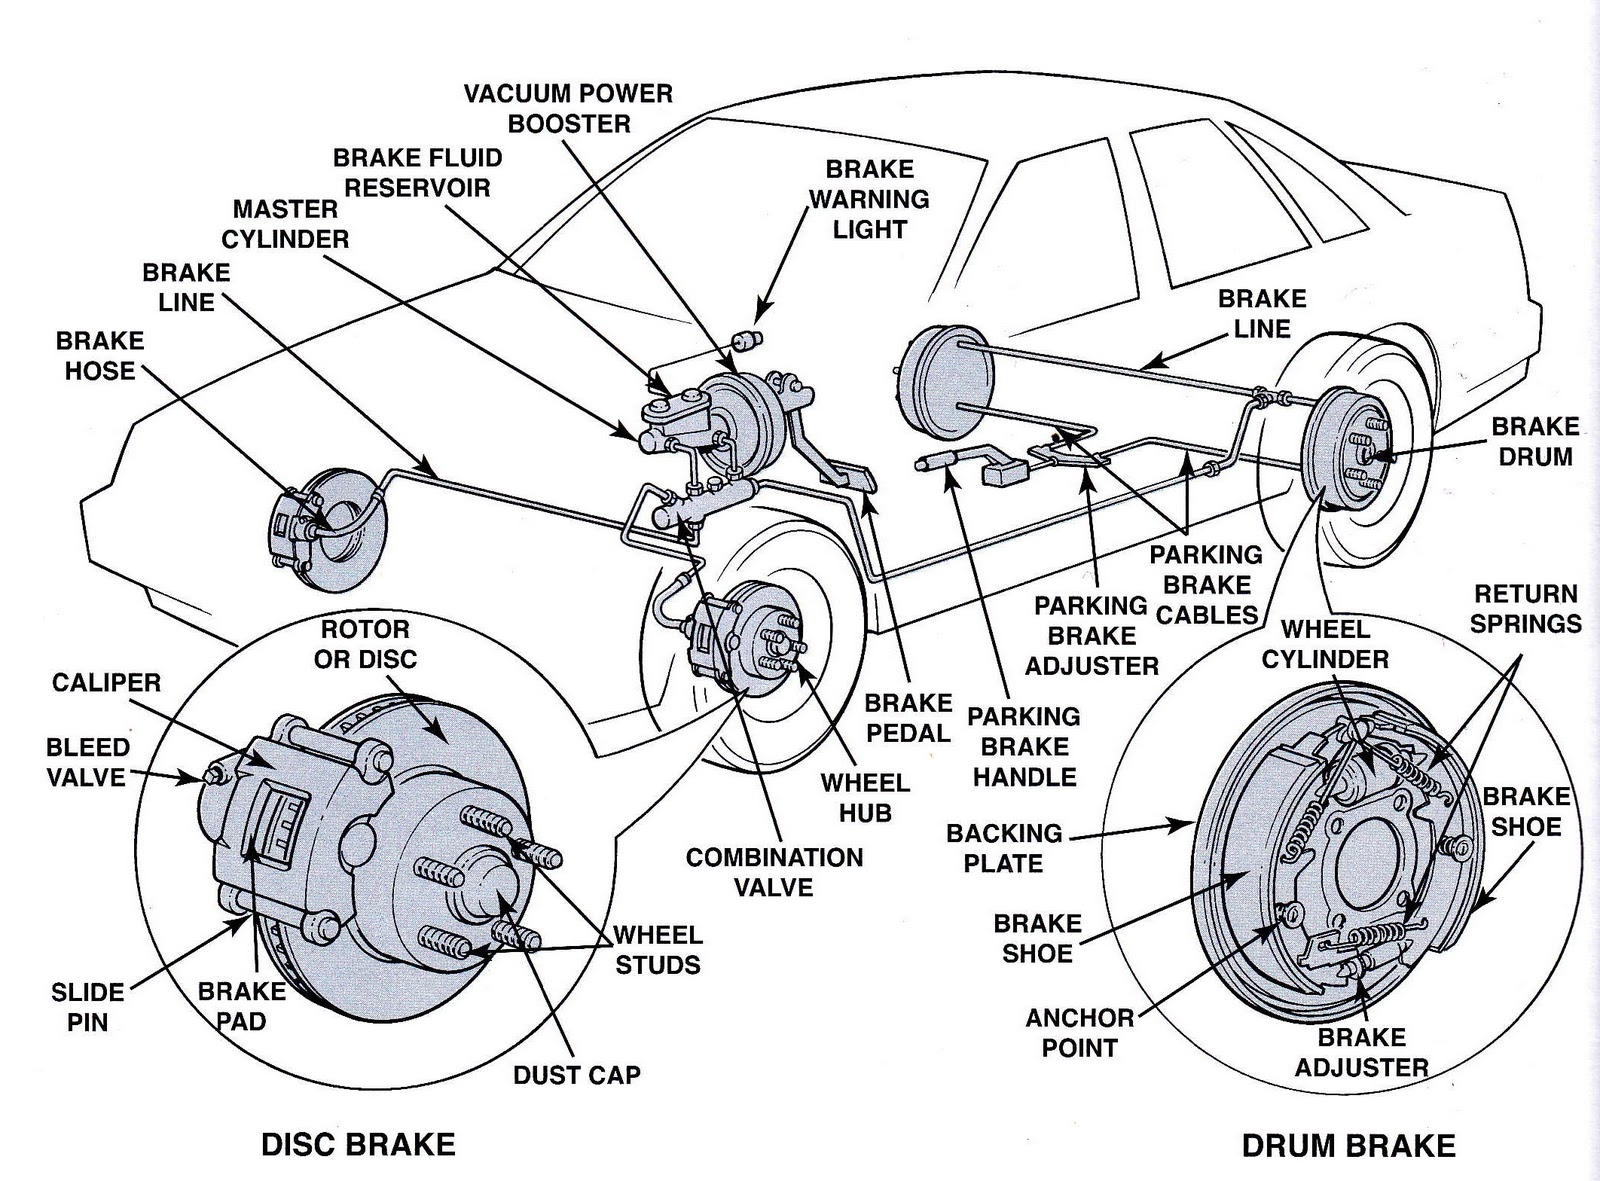 Strange Transmission Symptoms 303990 together with Search in addition Chevrolet Silverado Gmt900 Mk2 Second Generation 2007 2014 Fuse Box Diagram additionally 1998 Gmc Sierra Fuse Box Diagram moreover 93 Toyota Tercel Fuse Box Diagram. on 1996 chevy silverado wiring diagram